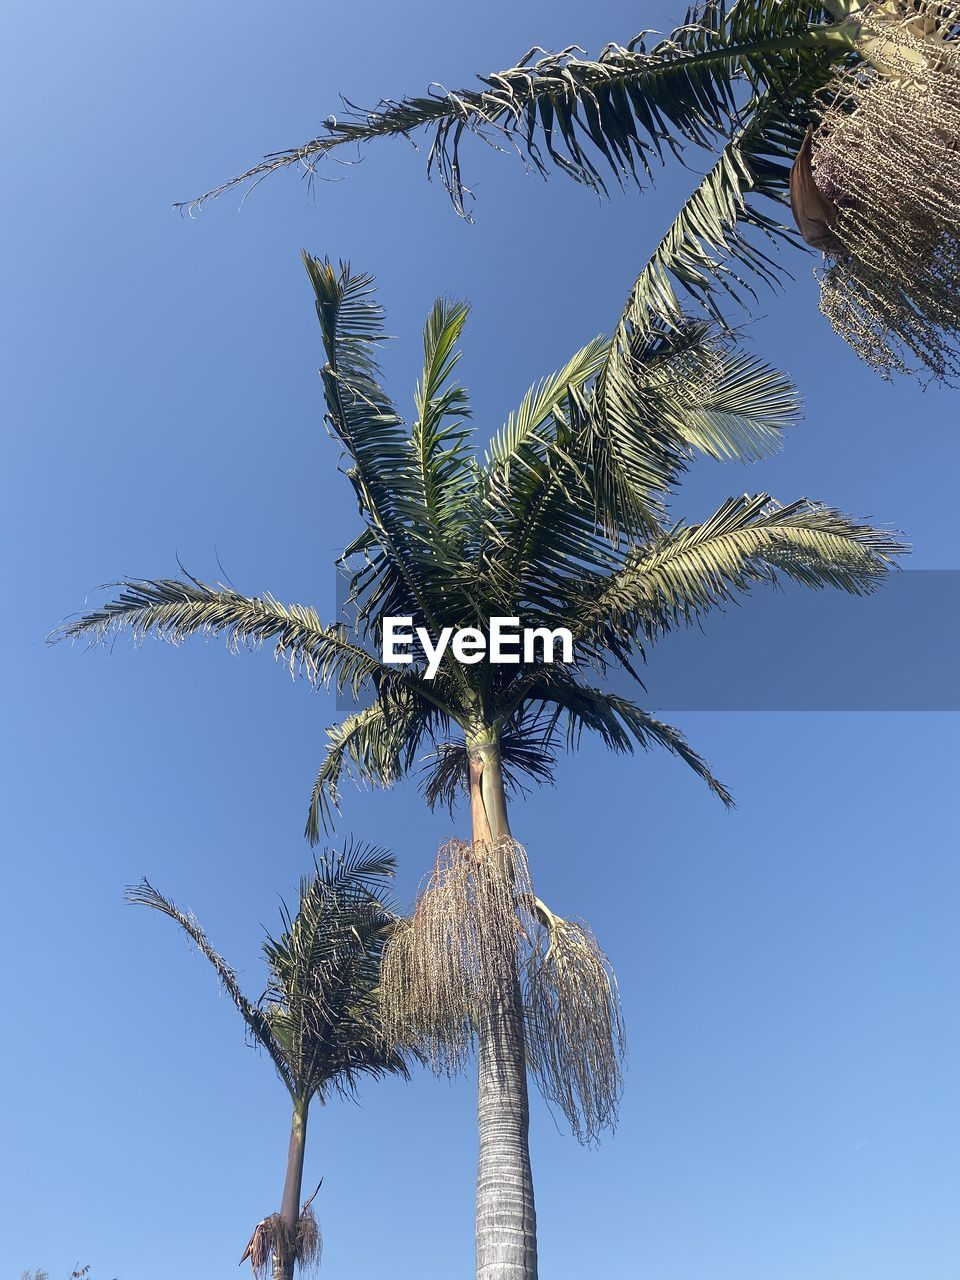 palm tree, tree, tropical climate, sky, plant, growth, low angle view, trunk, tree trunk, nature, no people, day, clear sky, beauty in nature, tranquility, blue, green color, outdoors, tall - high, coconut palm tree, palm leaf, tropical tree